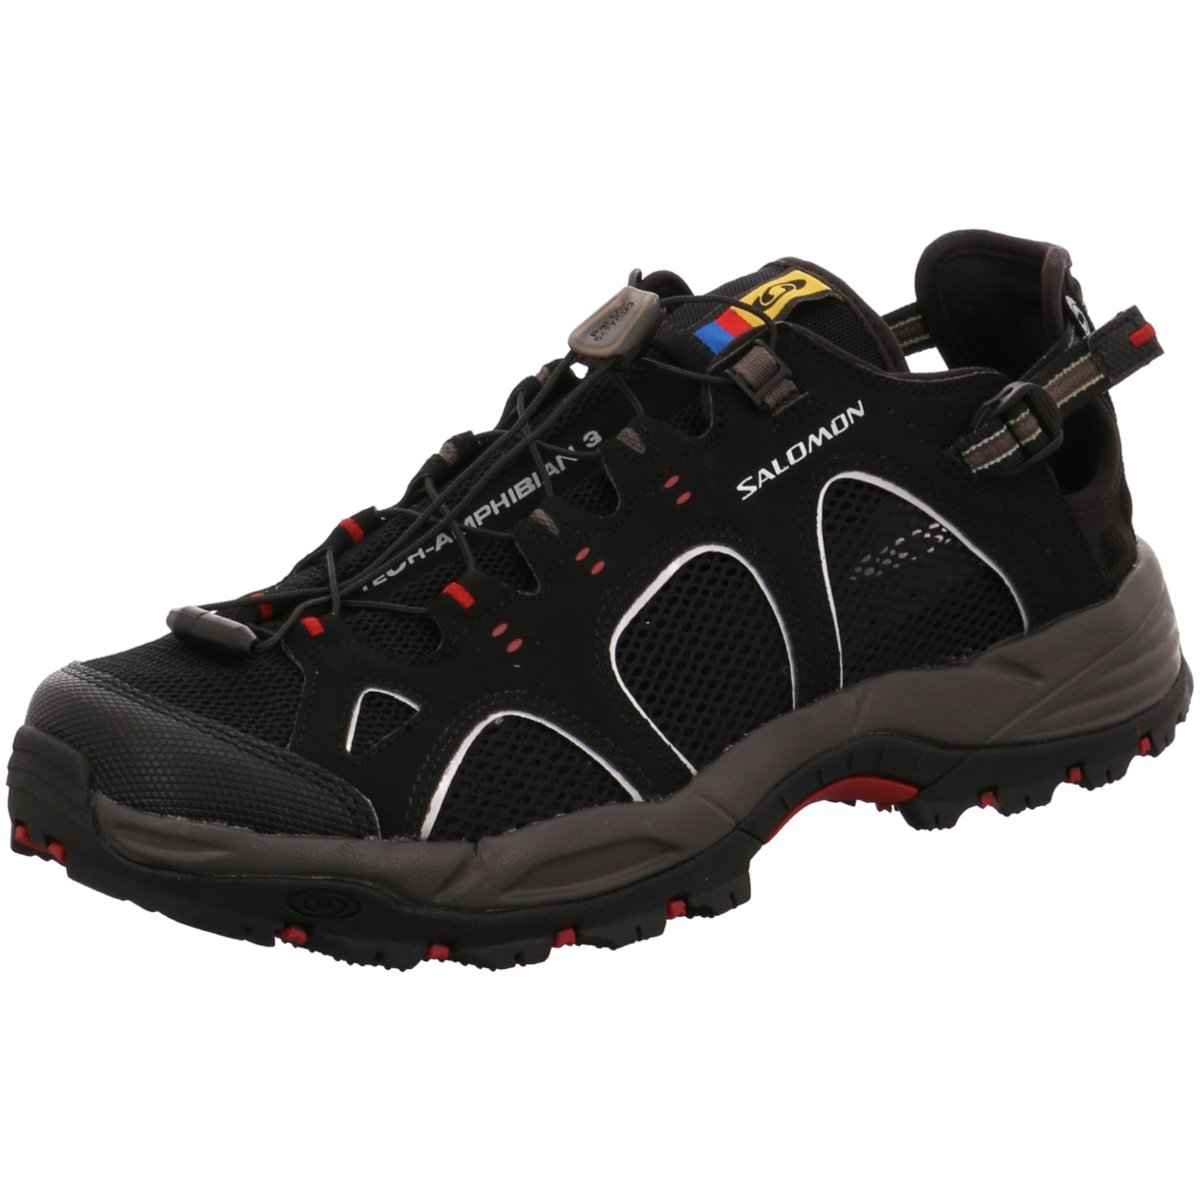 Salomon Techamphibian 4 Water Shoes SS19